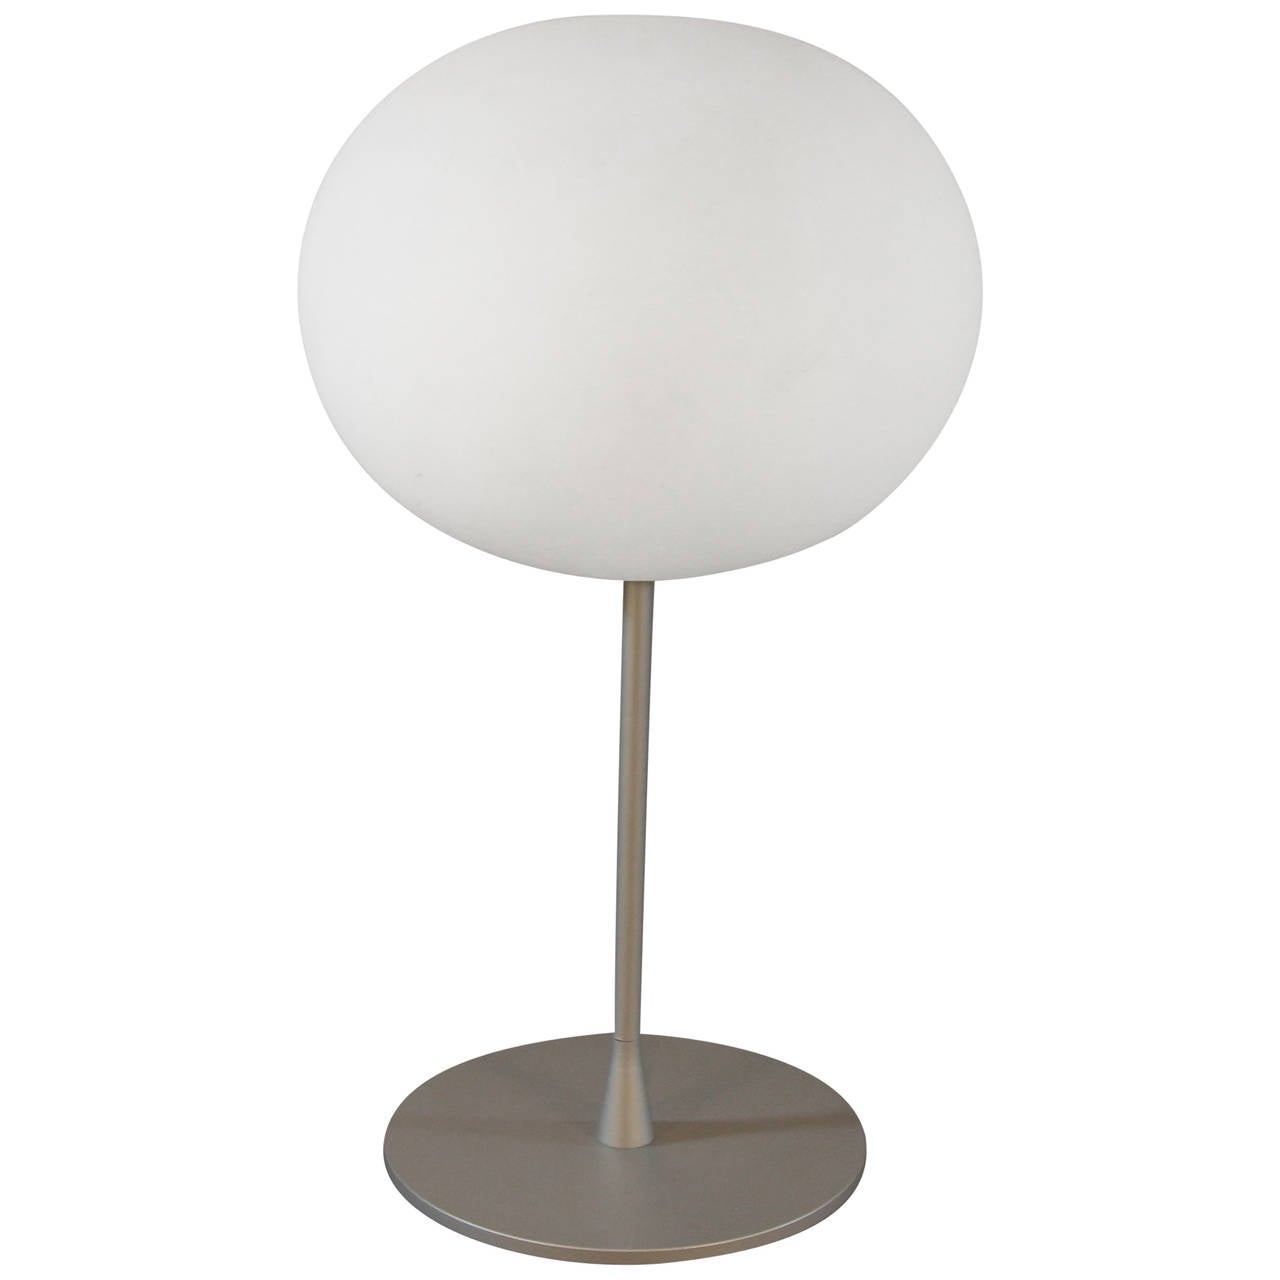 jasper morrison for flos glo ball t table lamp for sale. Black Bedroom Furniture Sets. Home Design Ideas